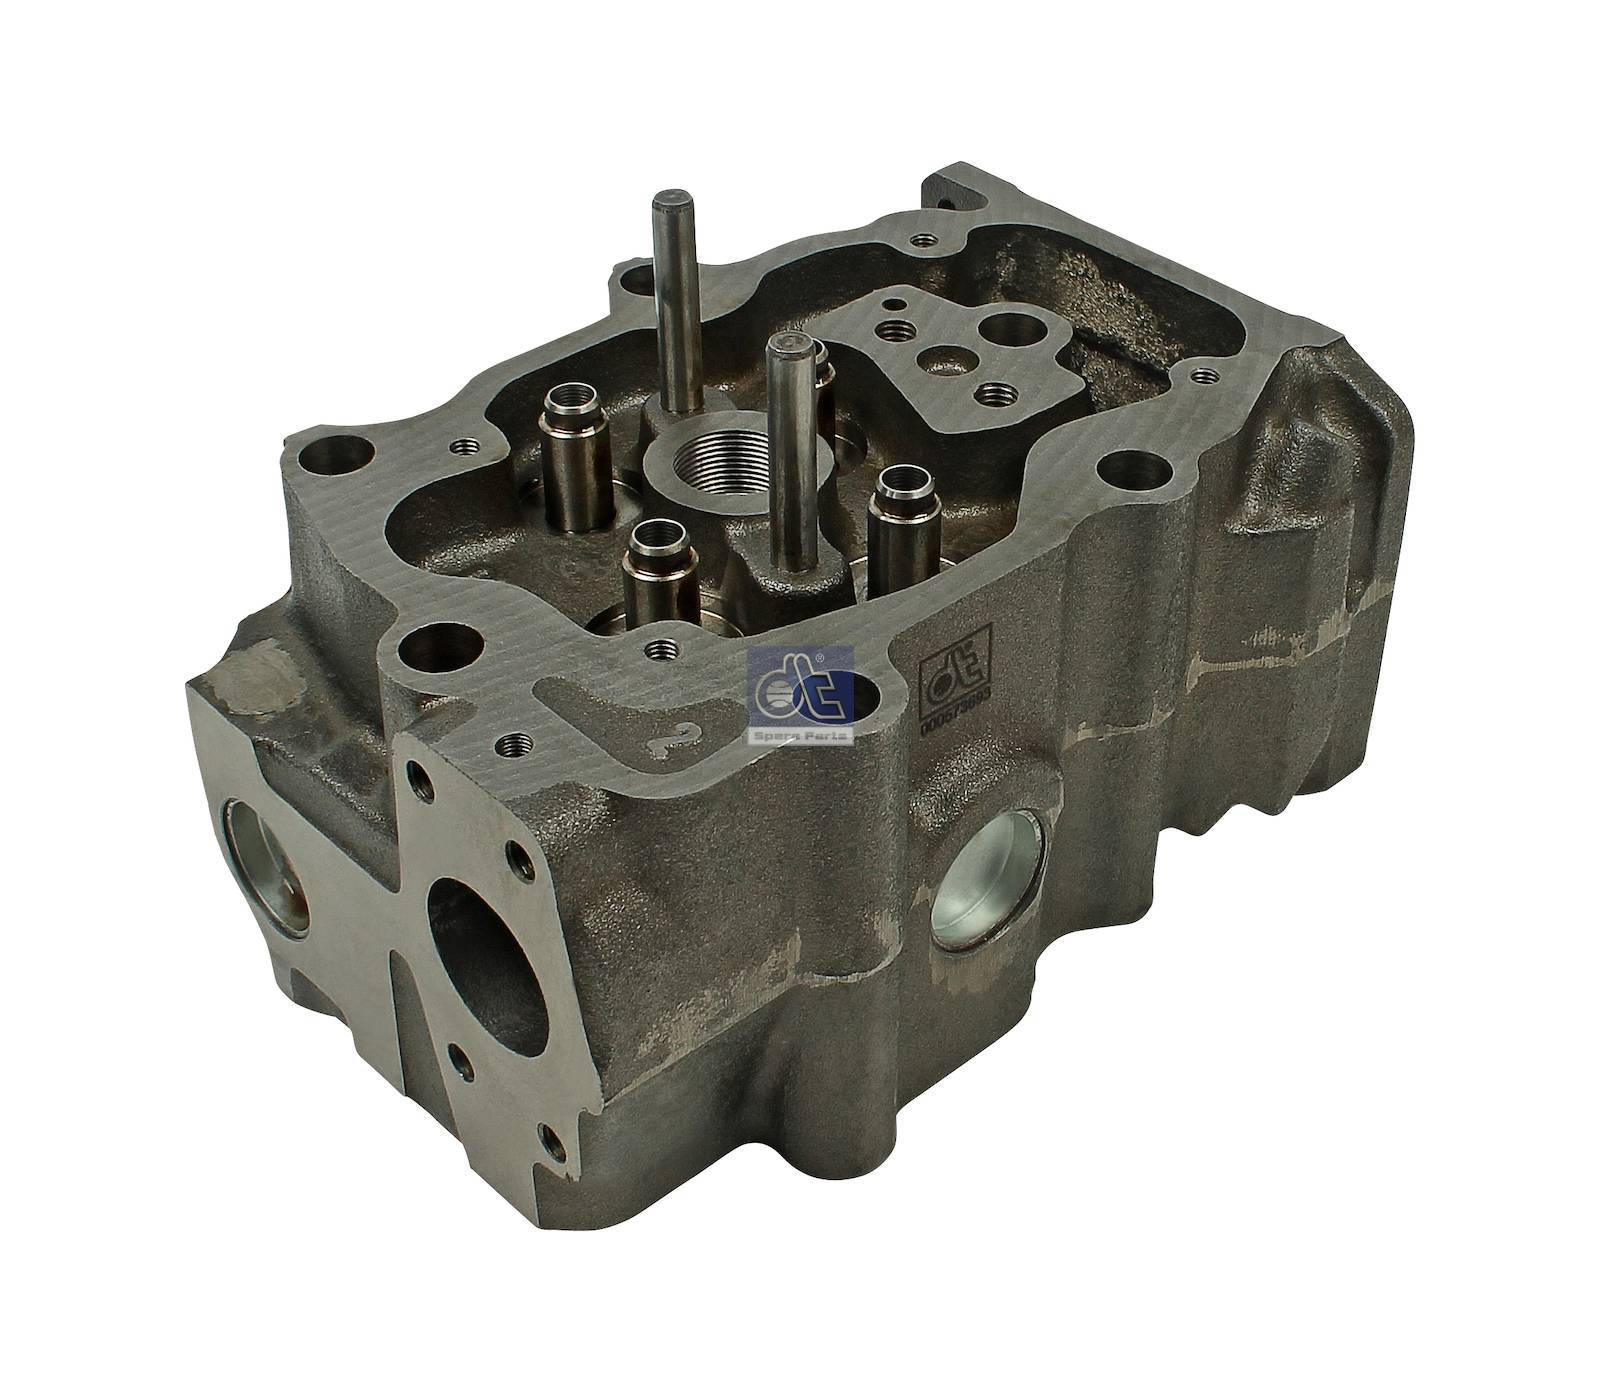 Cylinder head, without valves